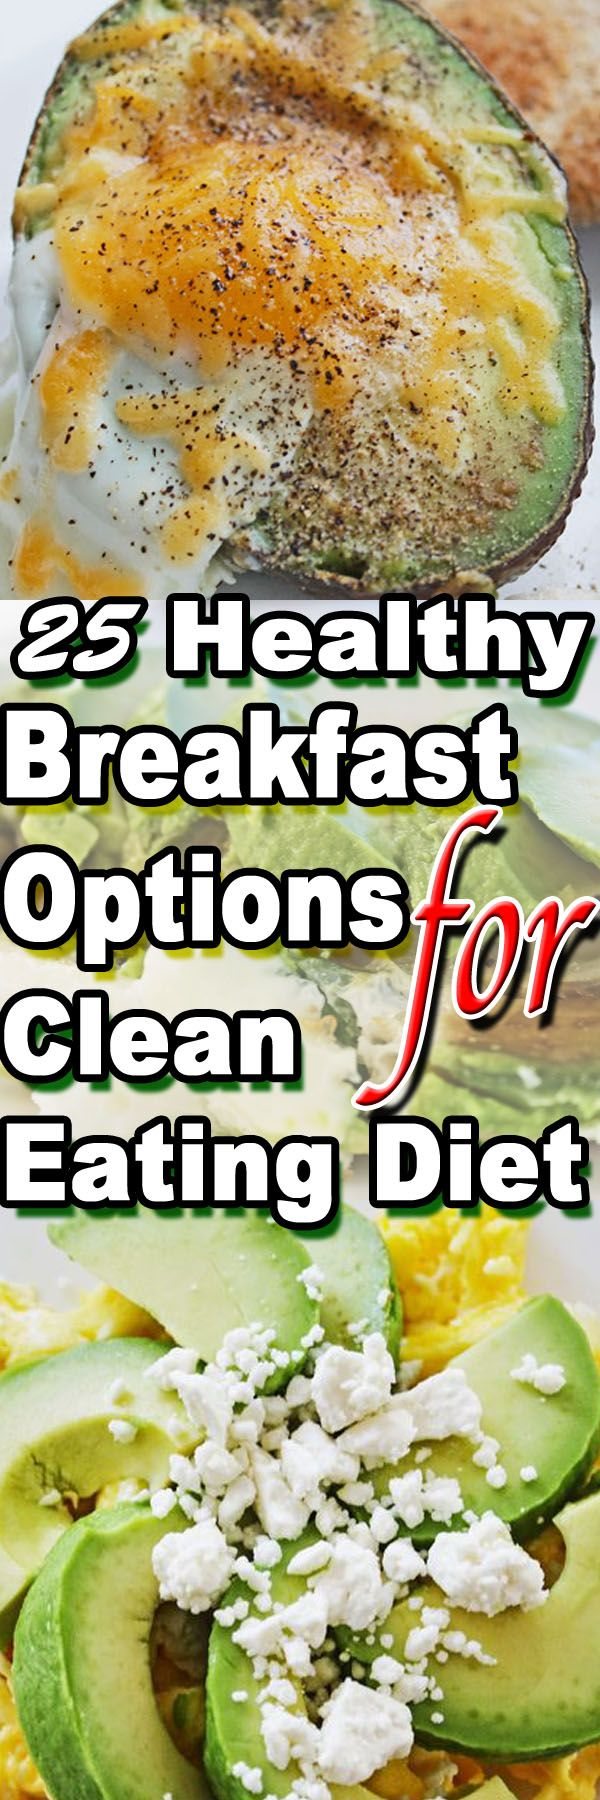 25 easy healthy breakfast options for clean eating diet! Site easy to navigate